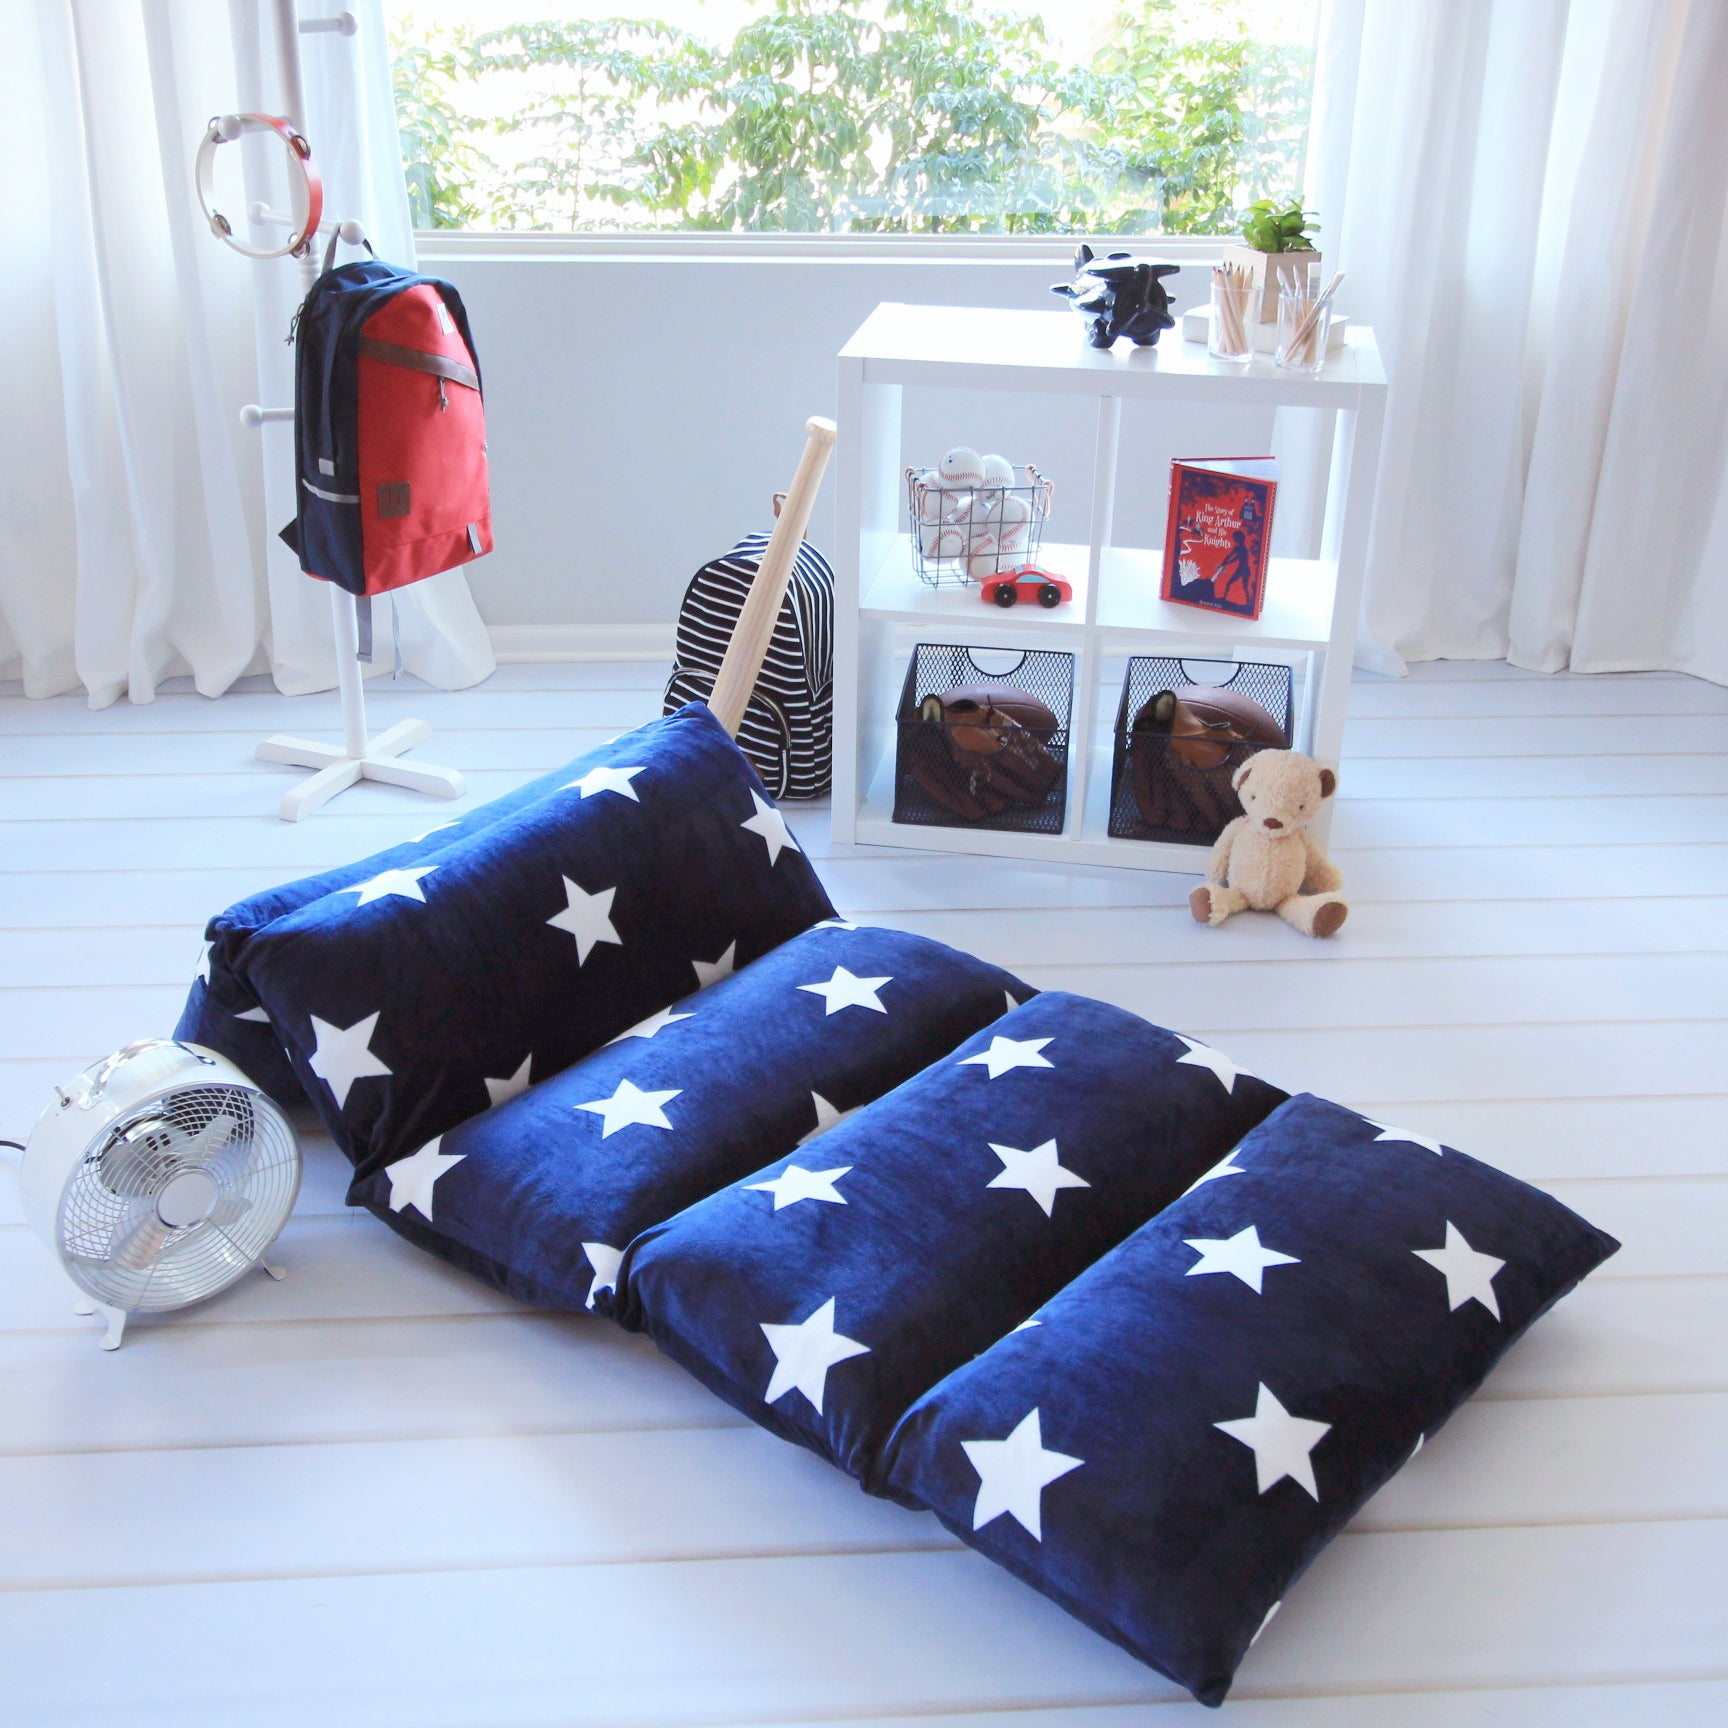 Kids' Pillow Bed Cover